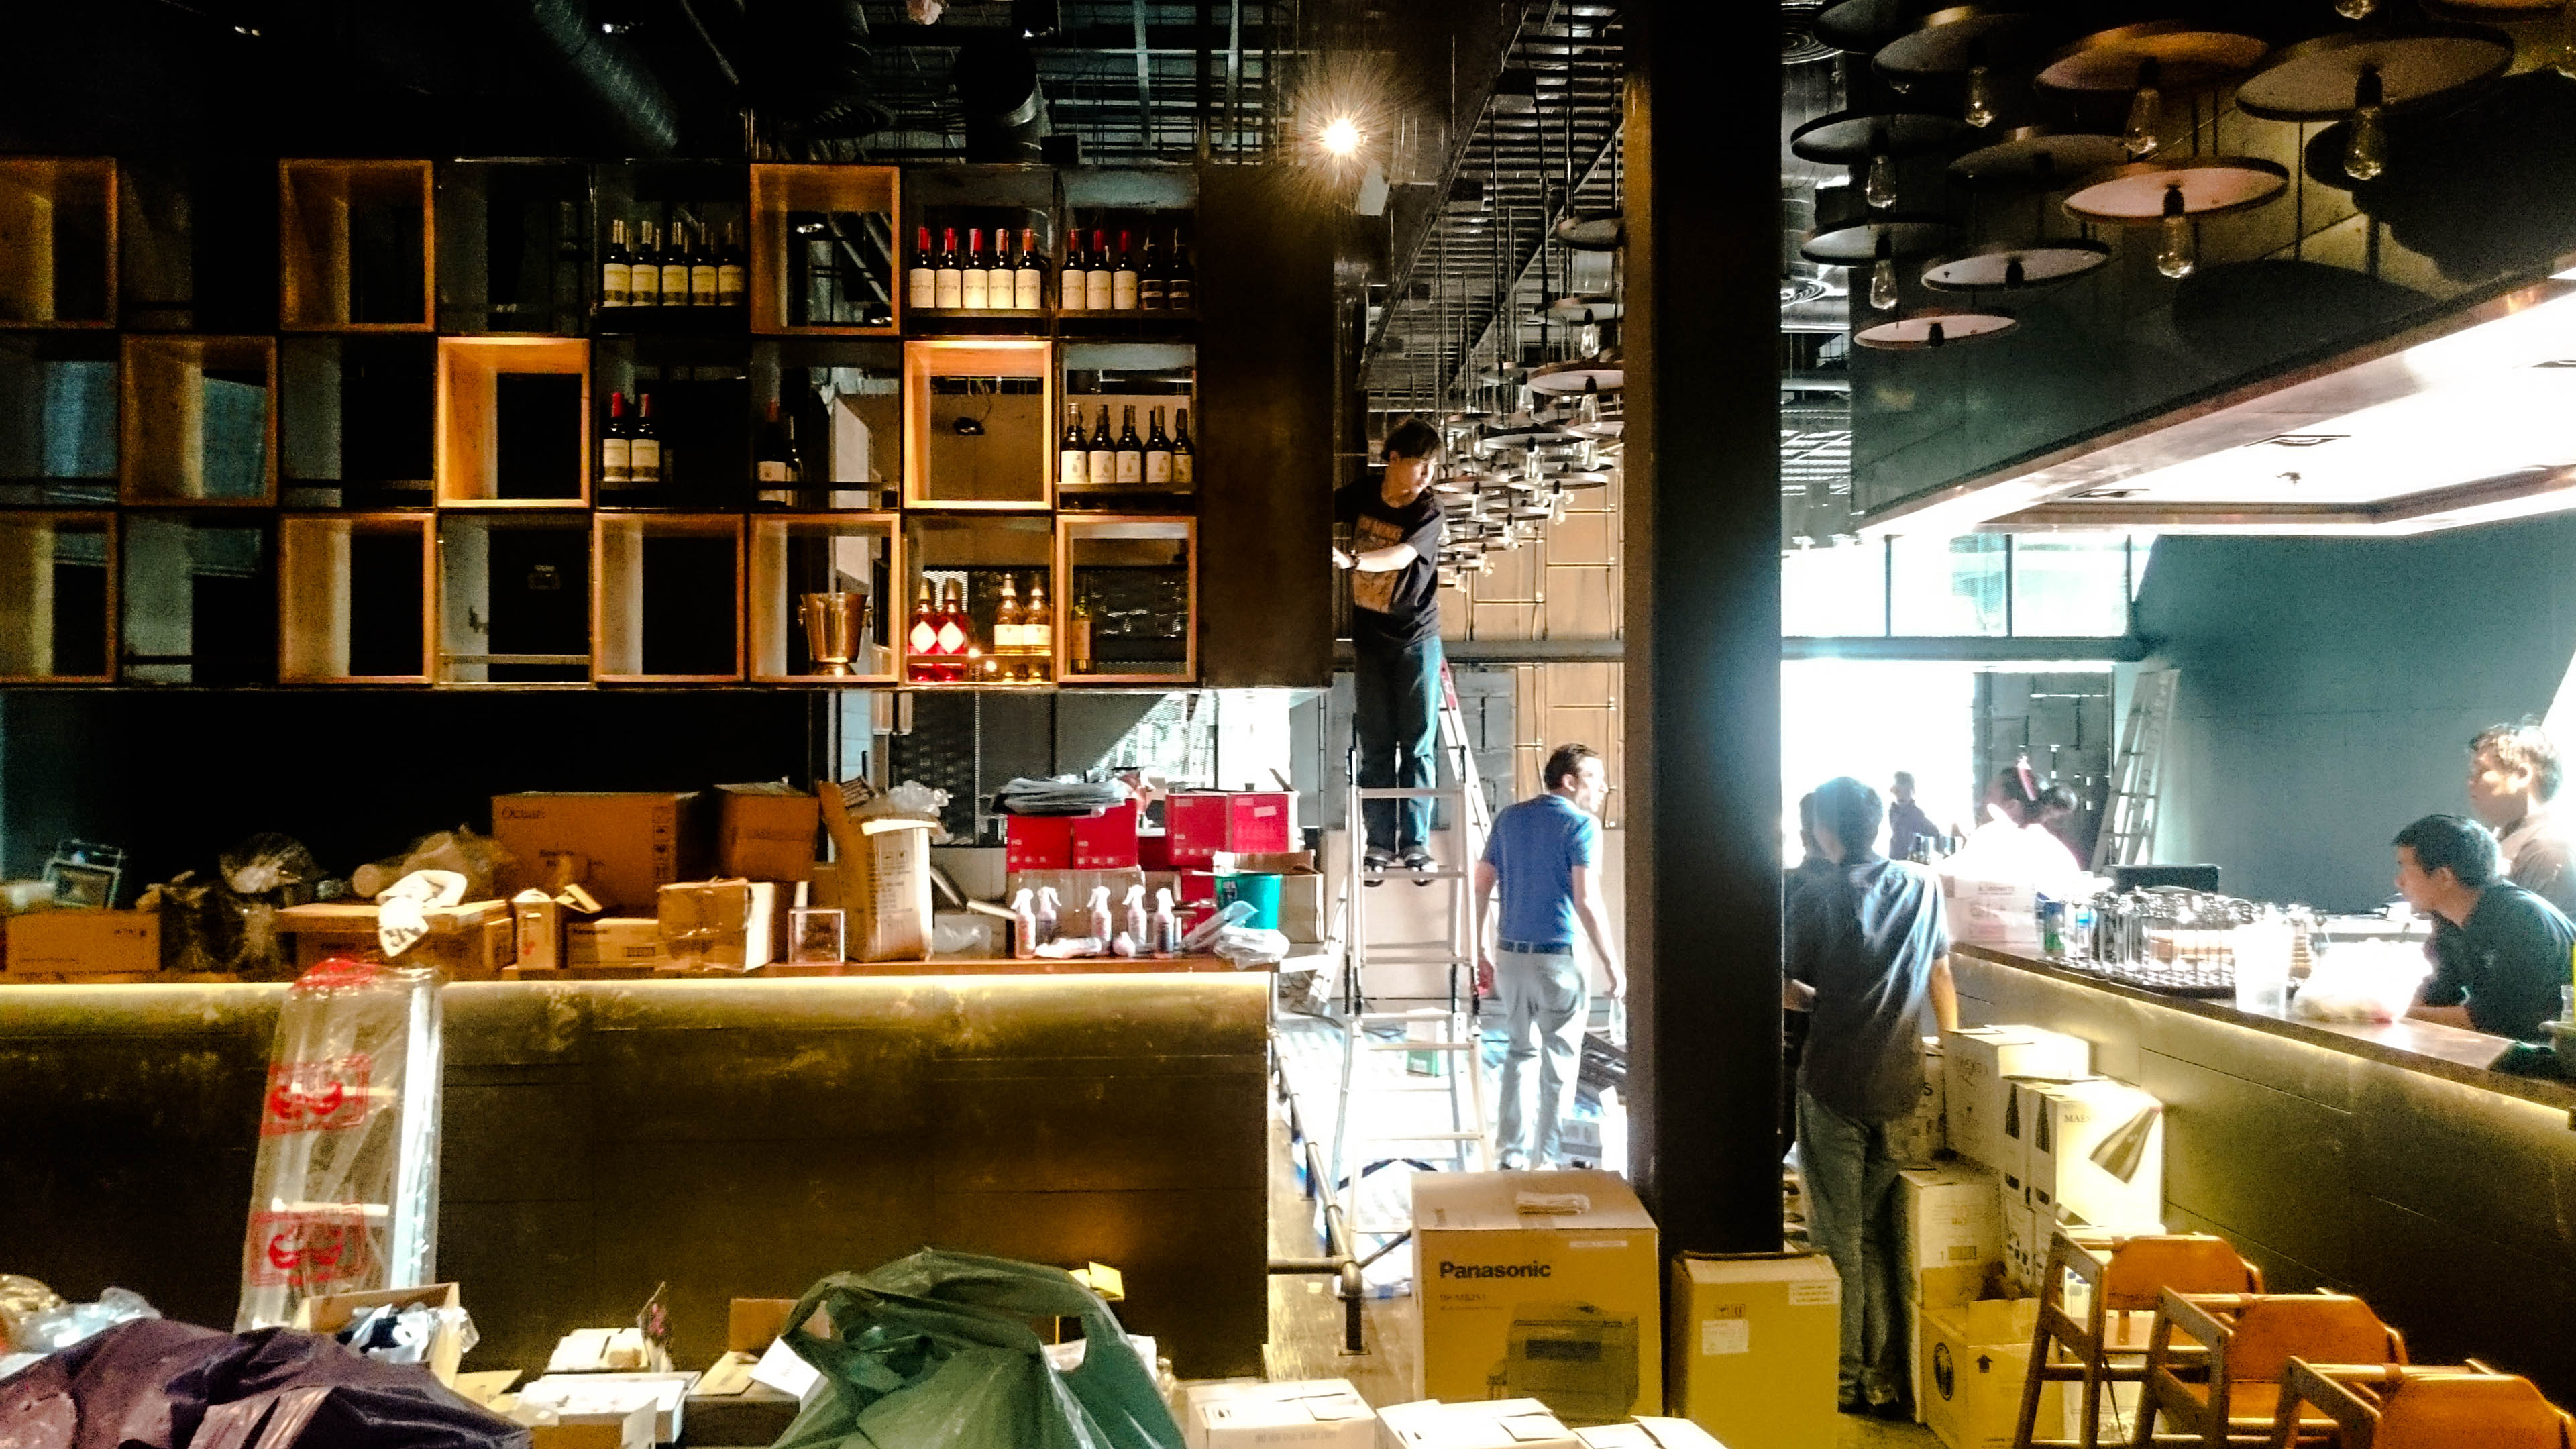 10Design wineconnection wine bar interior design hospitality 03